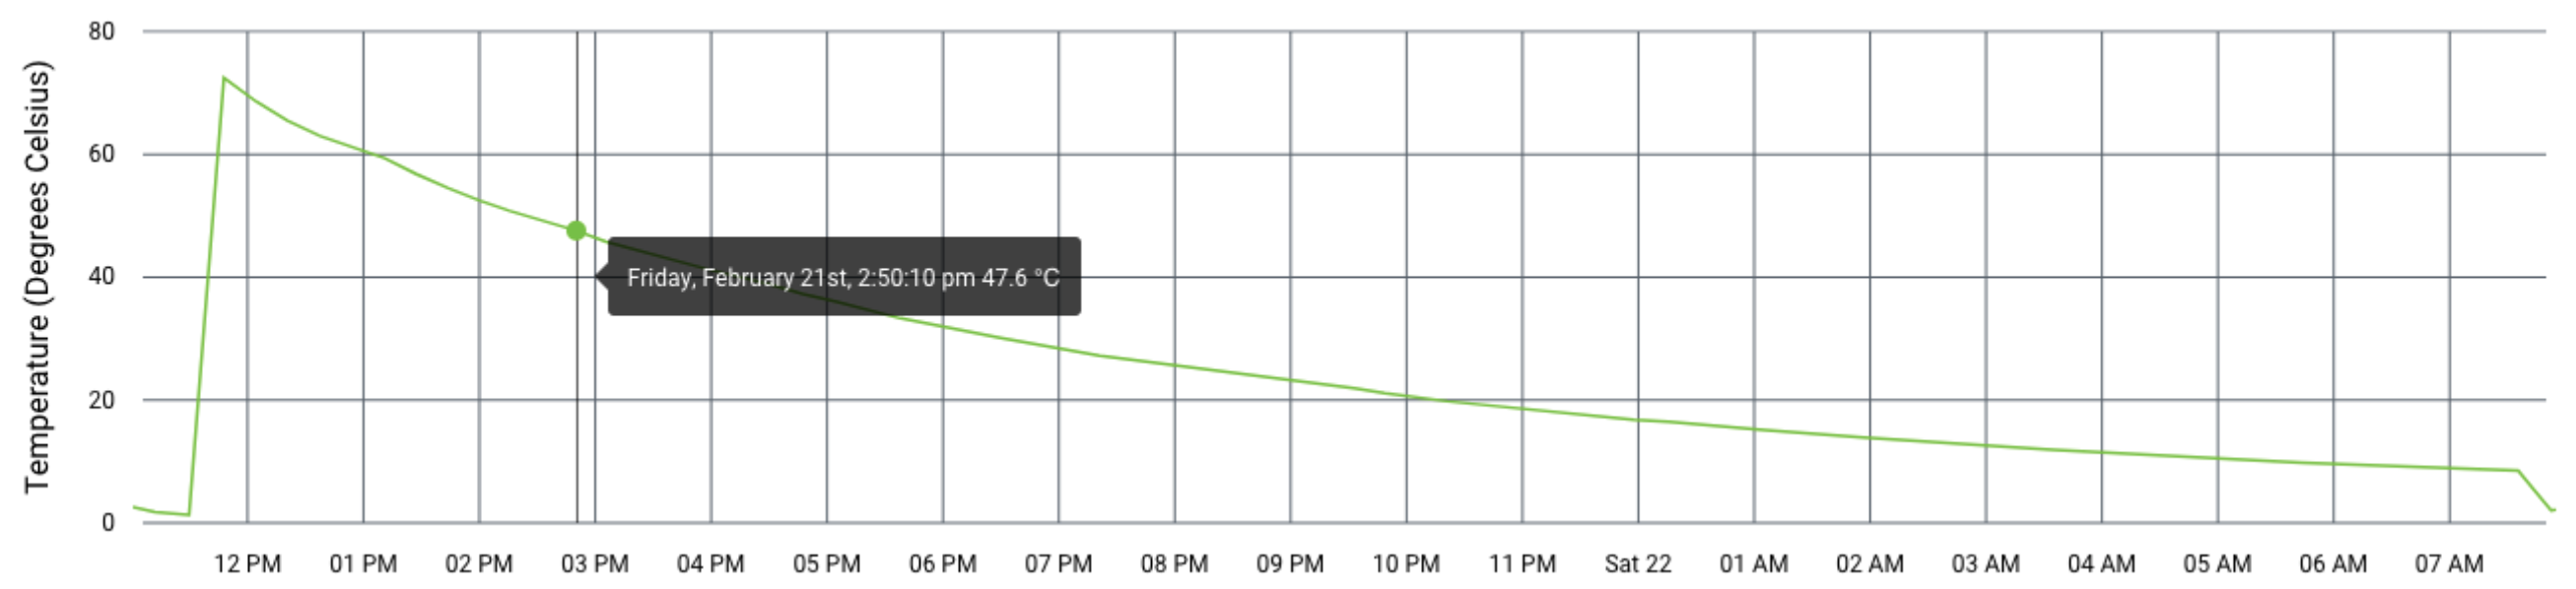 Temperature at 14:50 PM same day was 47.6 degrees